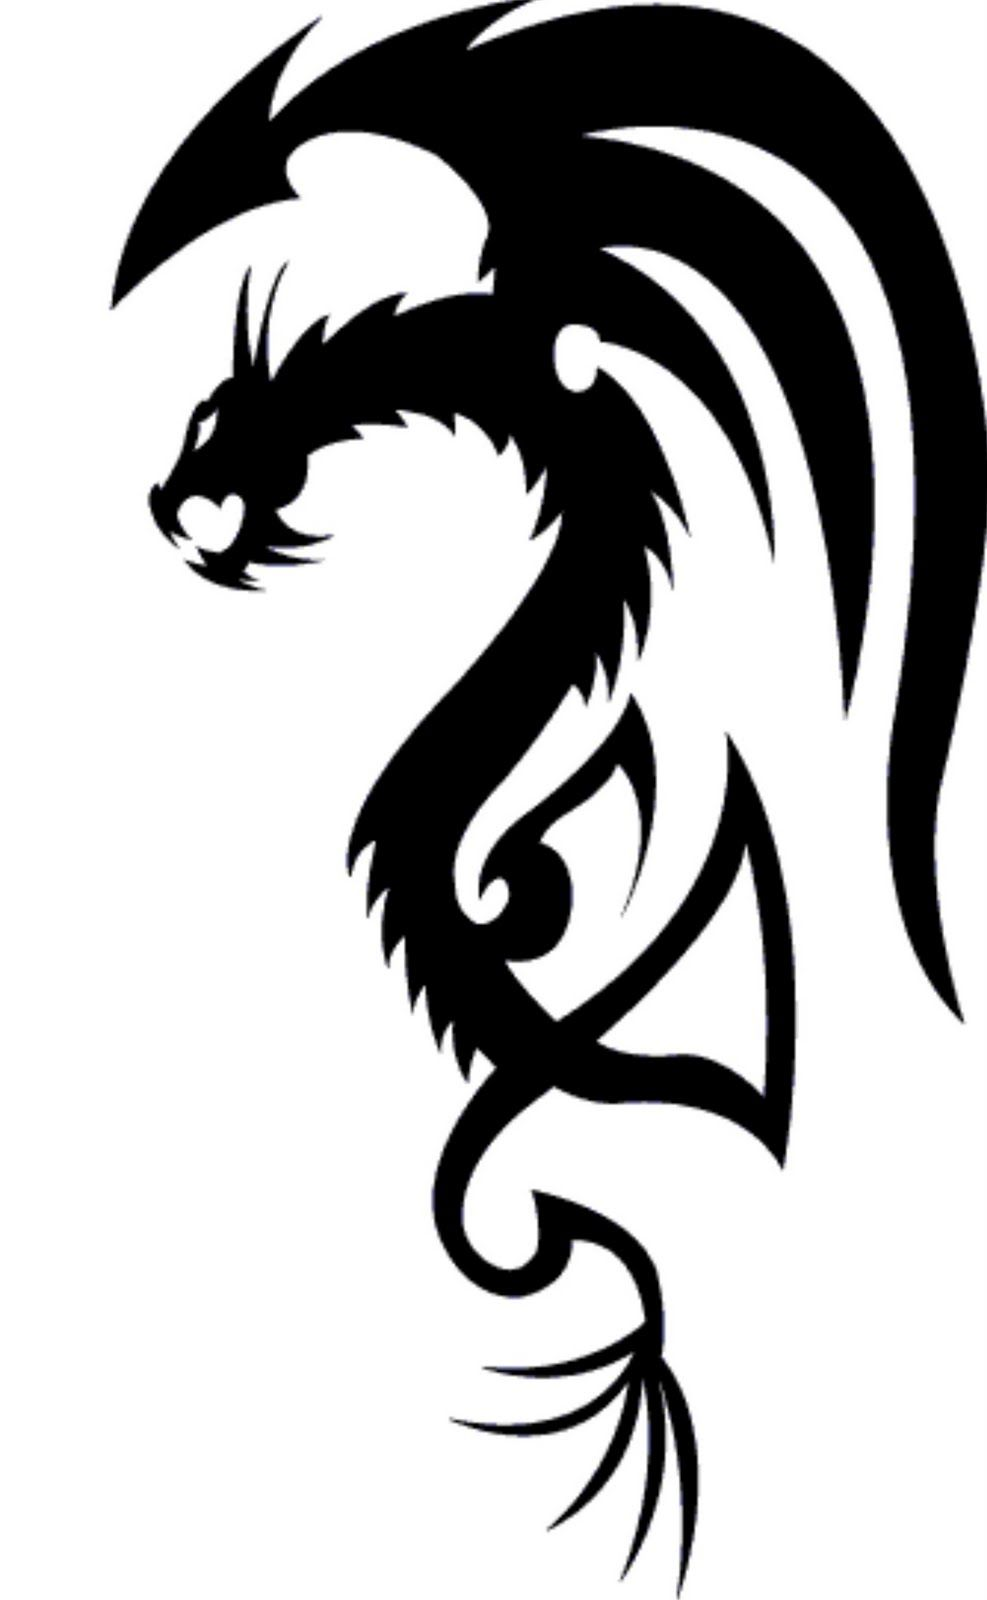 Tattoos Yeah I Know Dragon Tattoo Images Dragon Tattoo Dragon Tattoo Designs